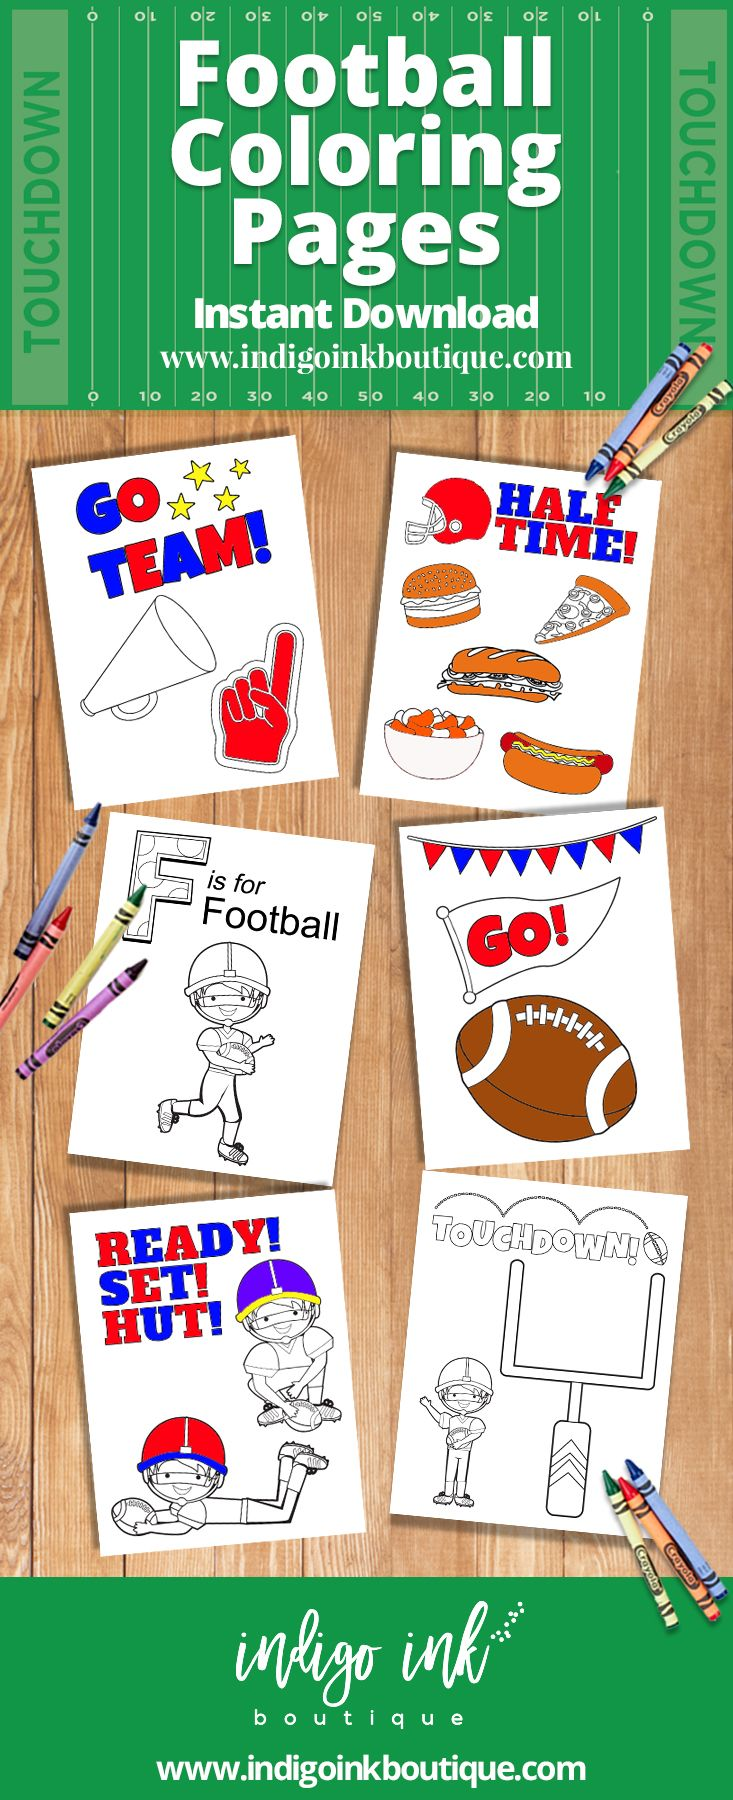 Football Coloring Pages For Kids Instant Download Super Bowl Coloring Sheets Tailgate Activity Football Printable In 2020 Football Coloring Pages Tailgate Activities Printables Free Kids